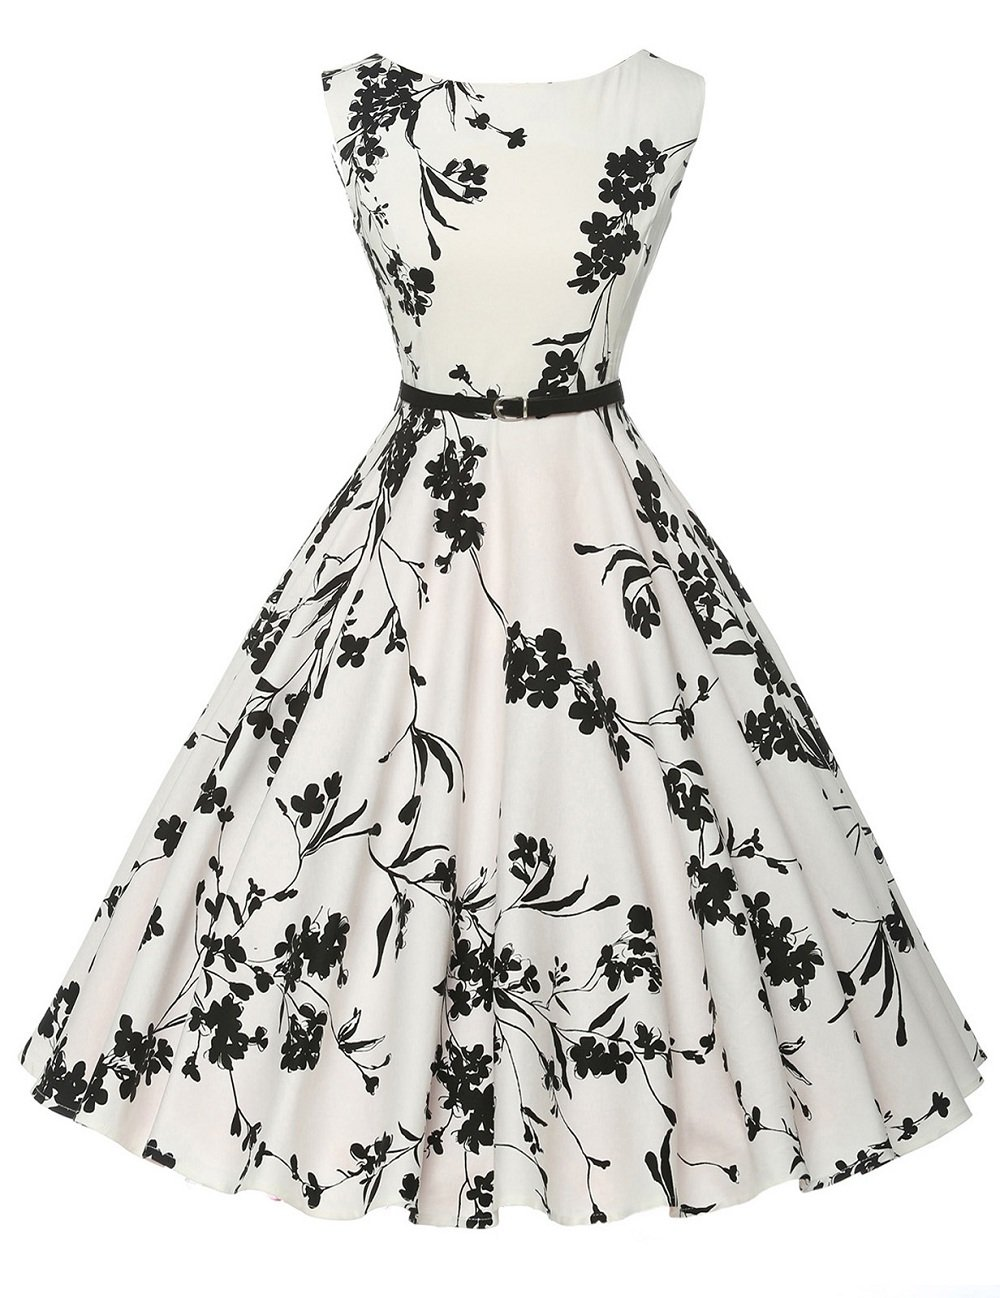 9e627f58213 Best Rated in Women s Dresses   Helpful Customer Reviews - Amazon.com